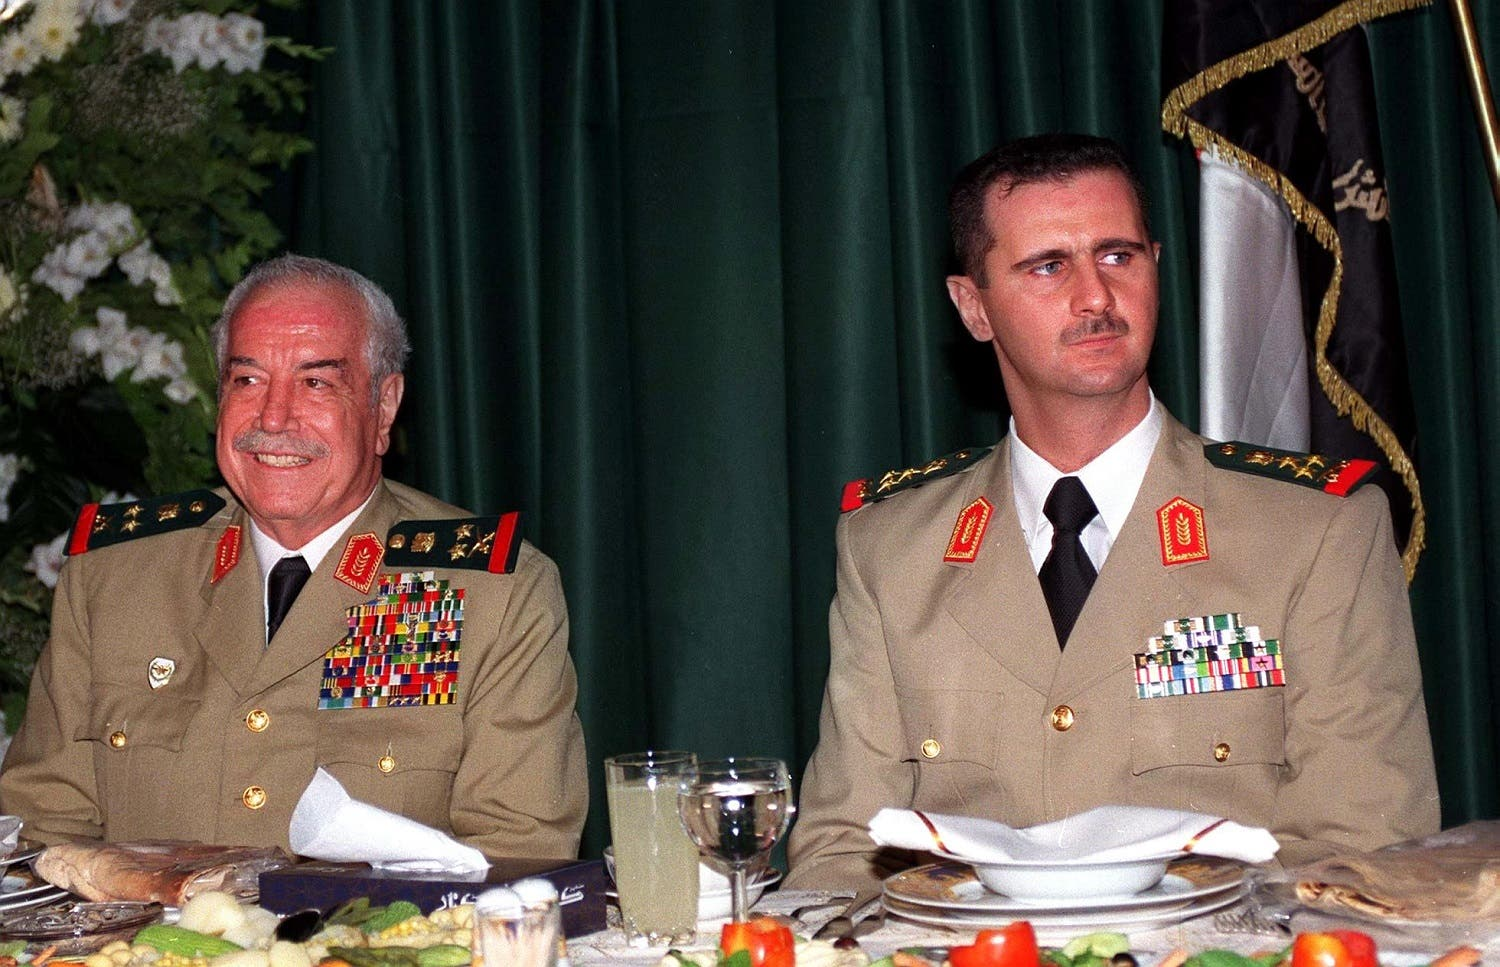 This handout file picture released on August 02, 2000 by the official Syrian News Agency (SANA) shows then Defence Minister Mustafa Tlass and Syrian President Bashar al-Assad (R) during a dinner in Damascus to marking the Army Day. Mustapha Tlass died at a hospital in Paris on June 27, 2017 at the age of 85, his son told AFP. (AFP)